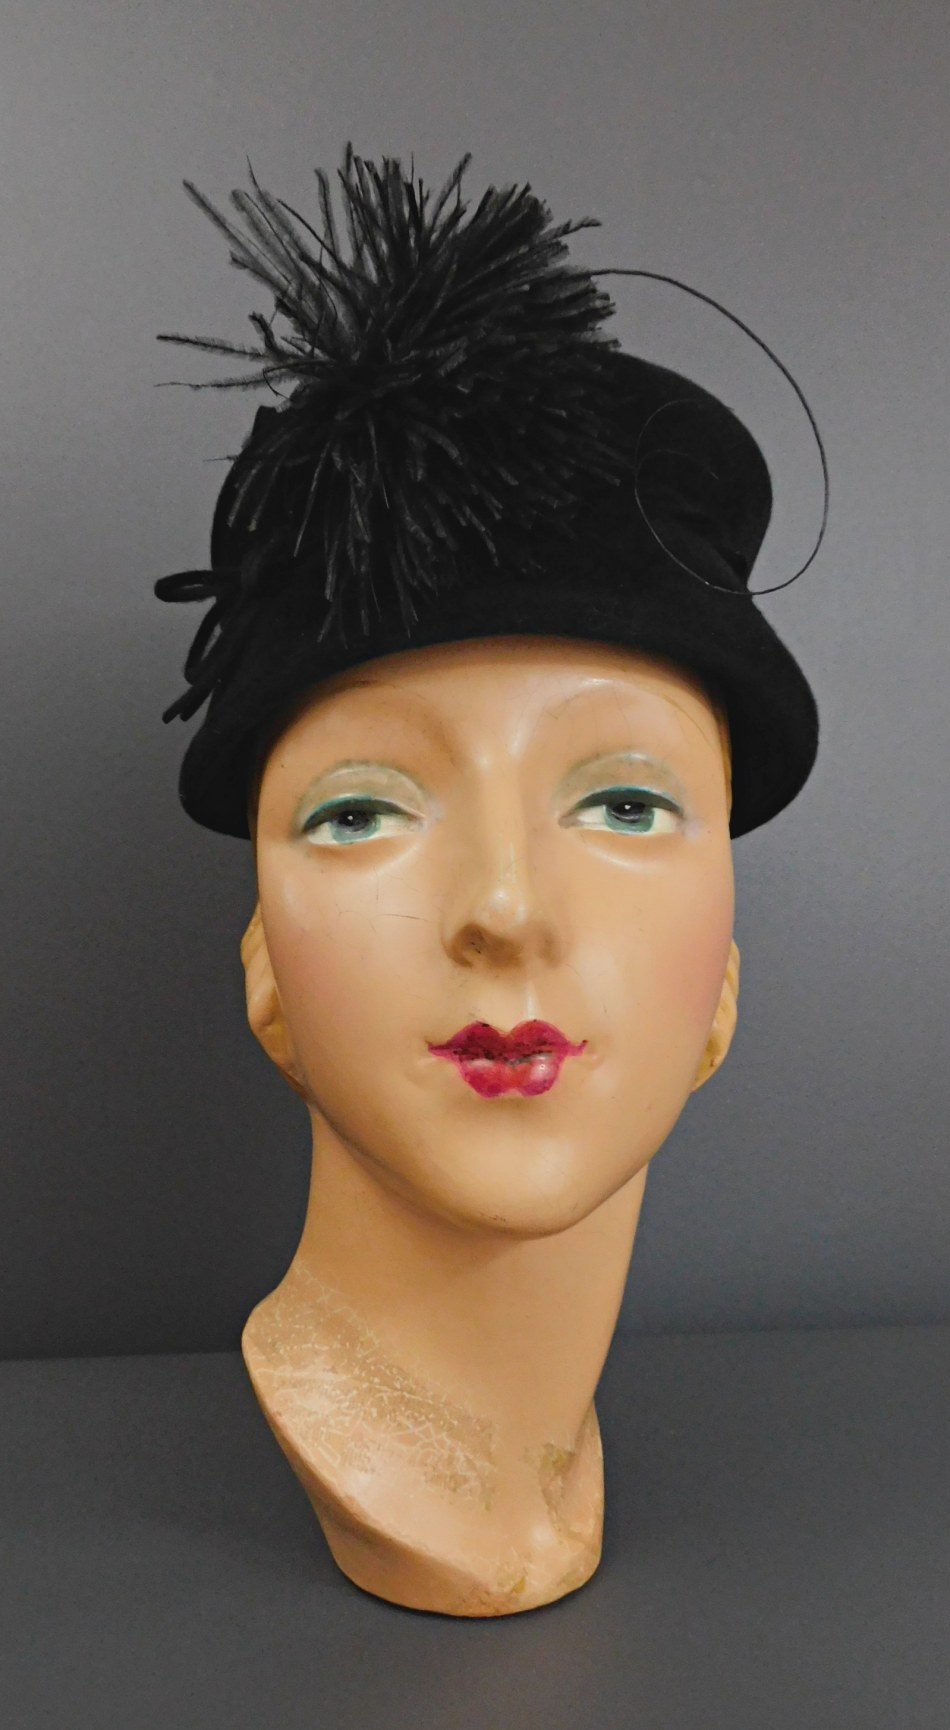 Vintage Black Velour Hat with Felt Bow and Feather Puff, 1950s Toque, 21 inch head